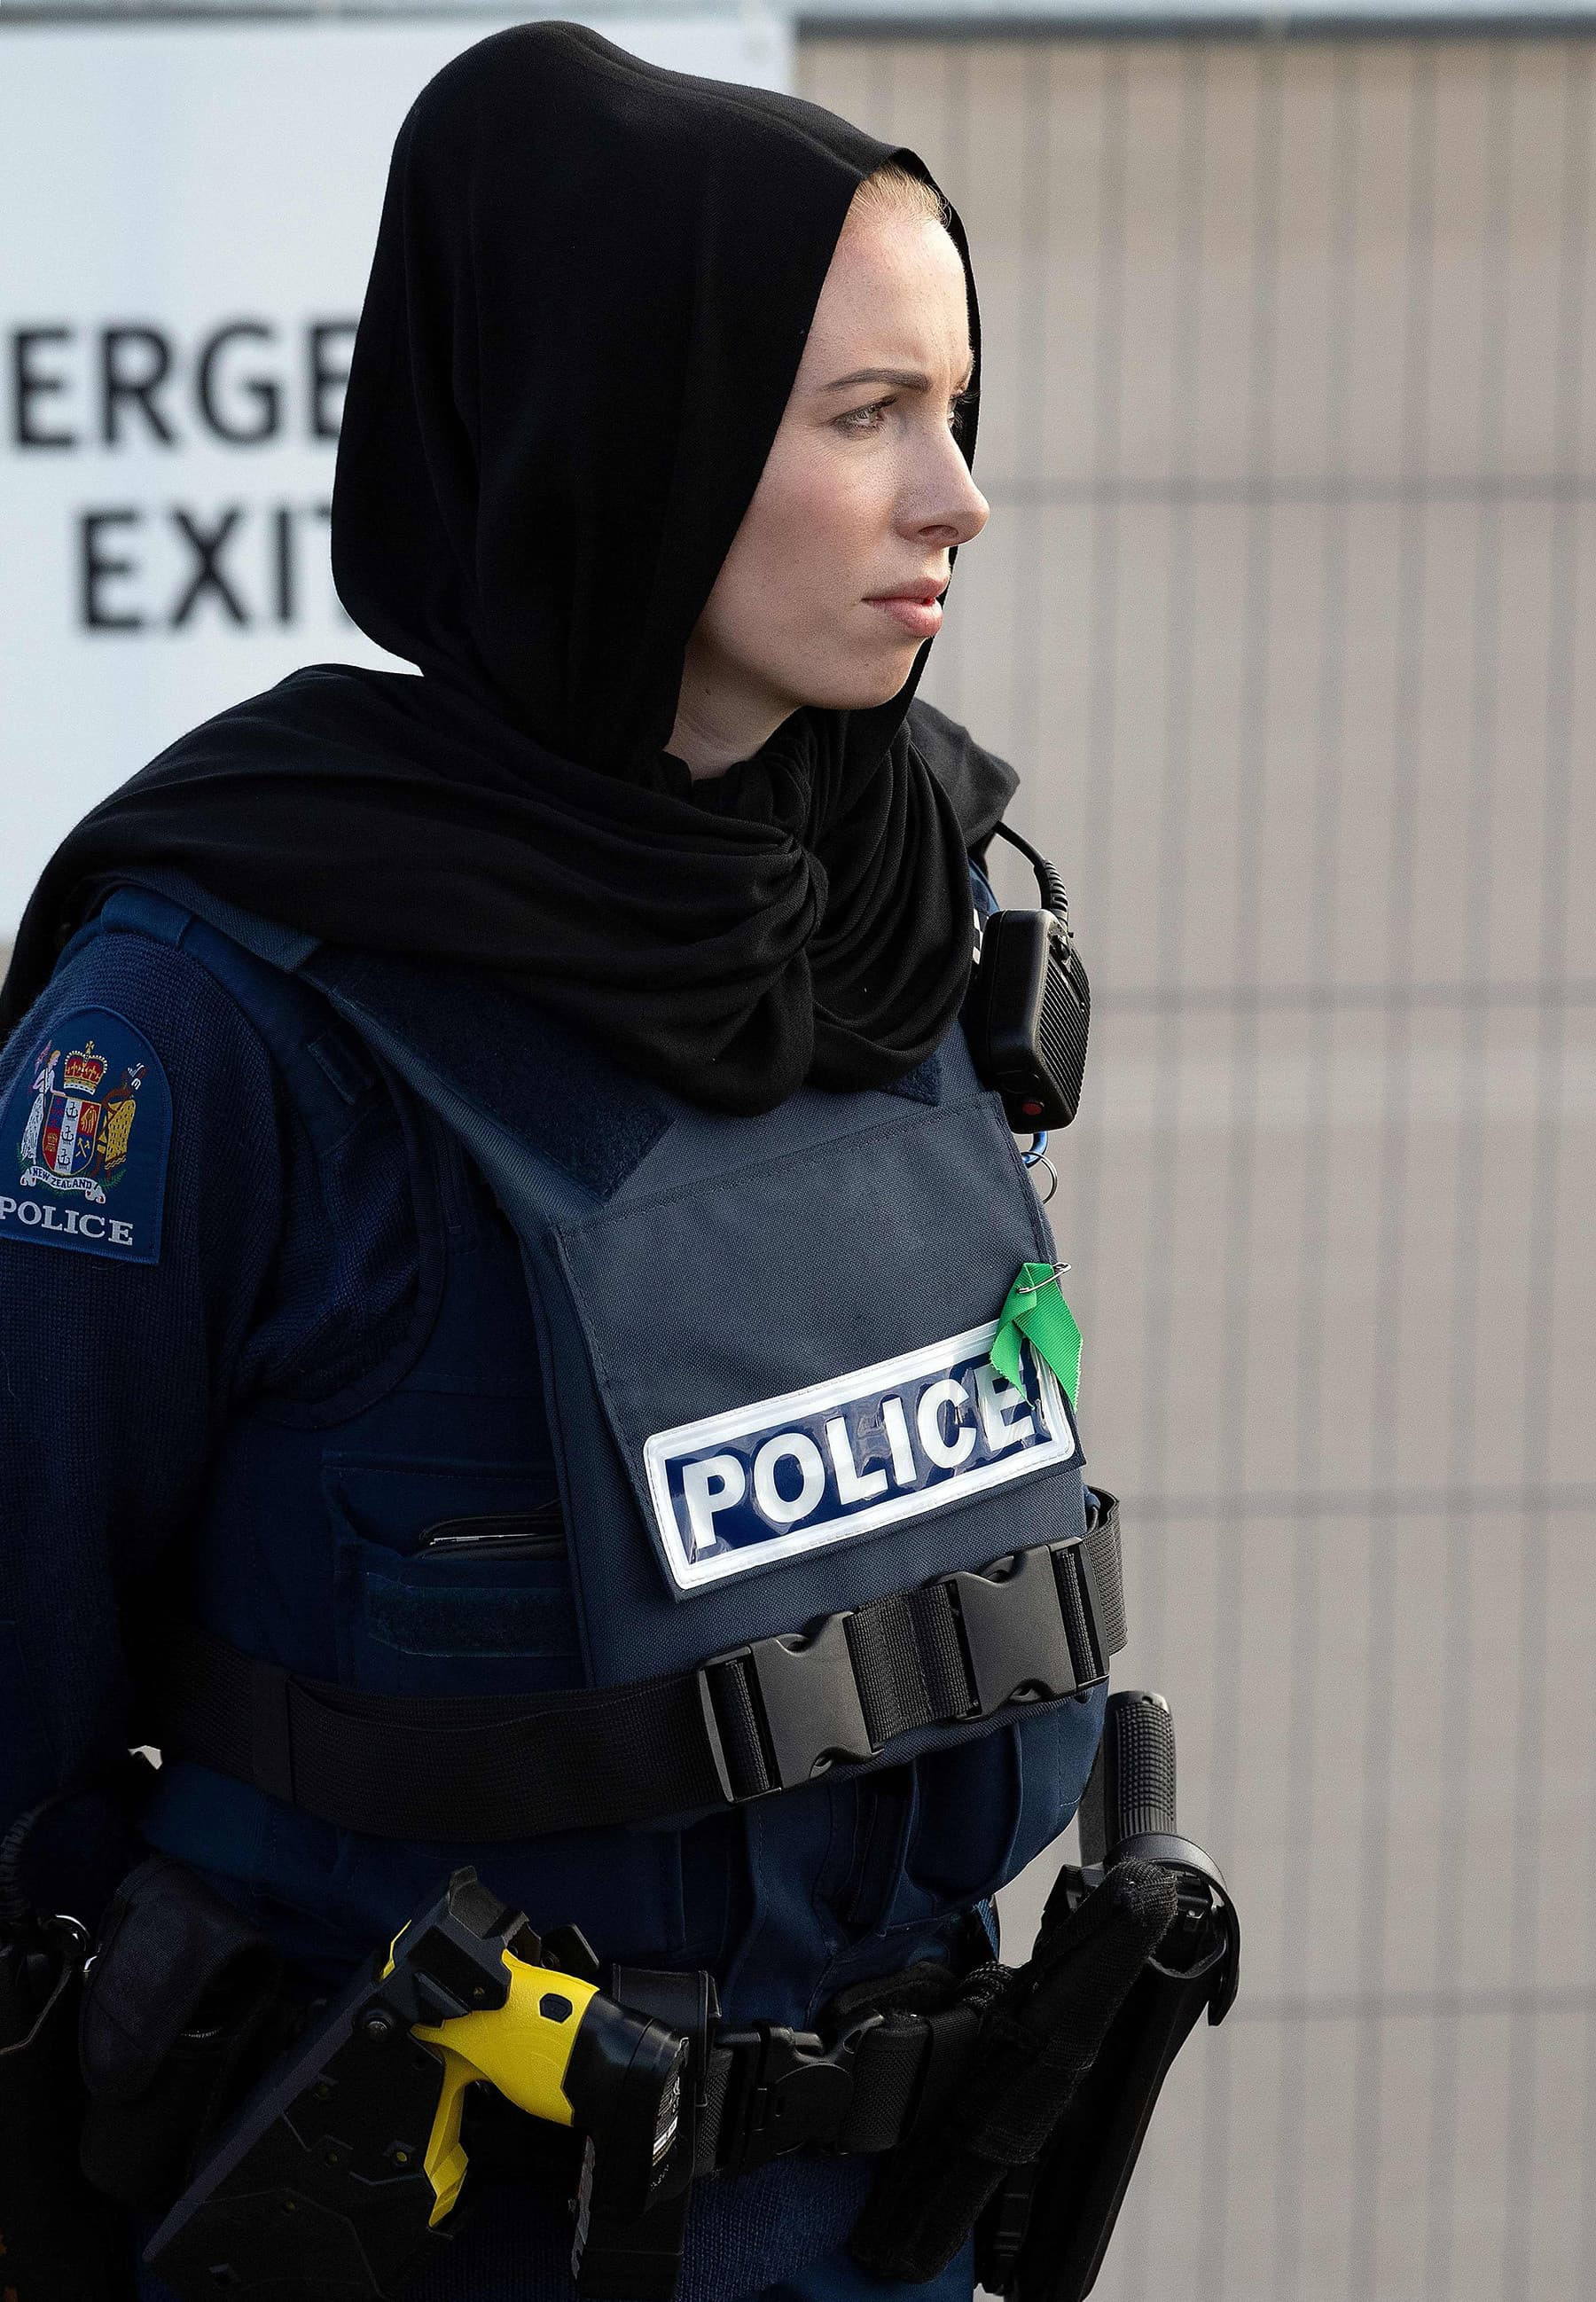 A police officer wearing a headscarf stands guard during a funeral ceremony at the Memorial Park in Christchurch on Friday. — AFP